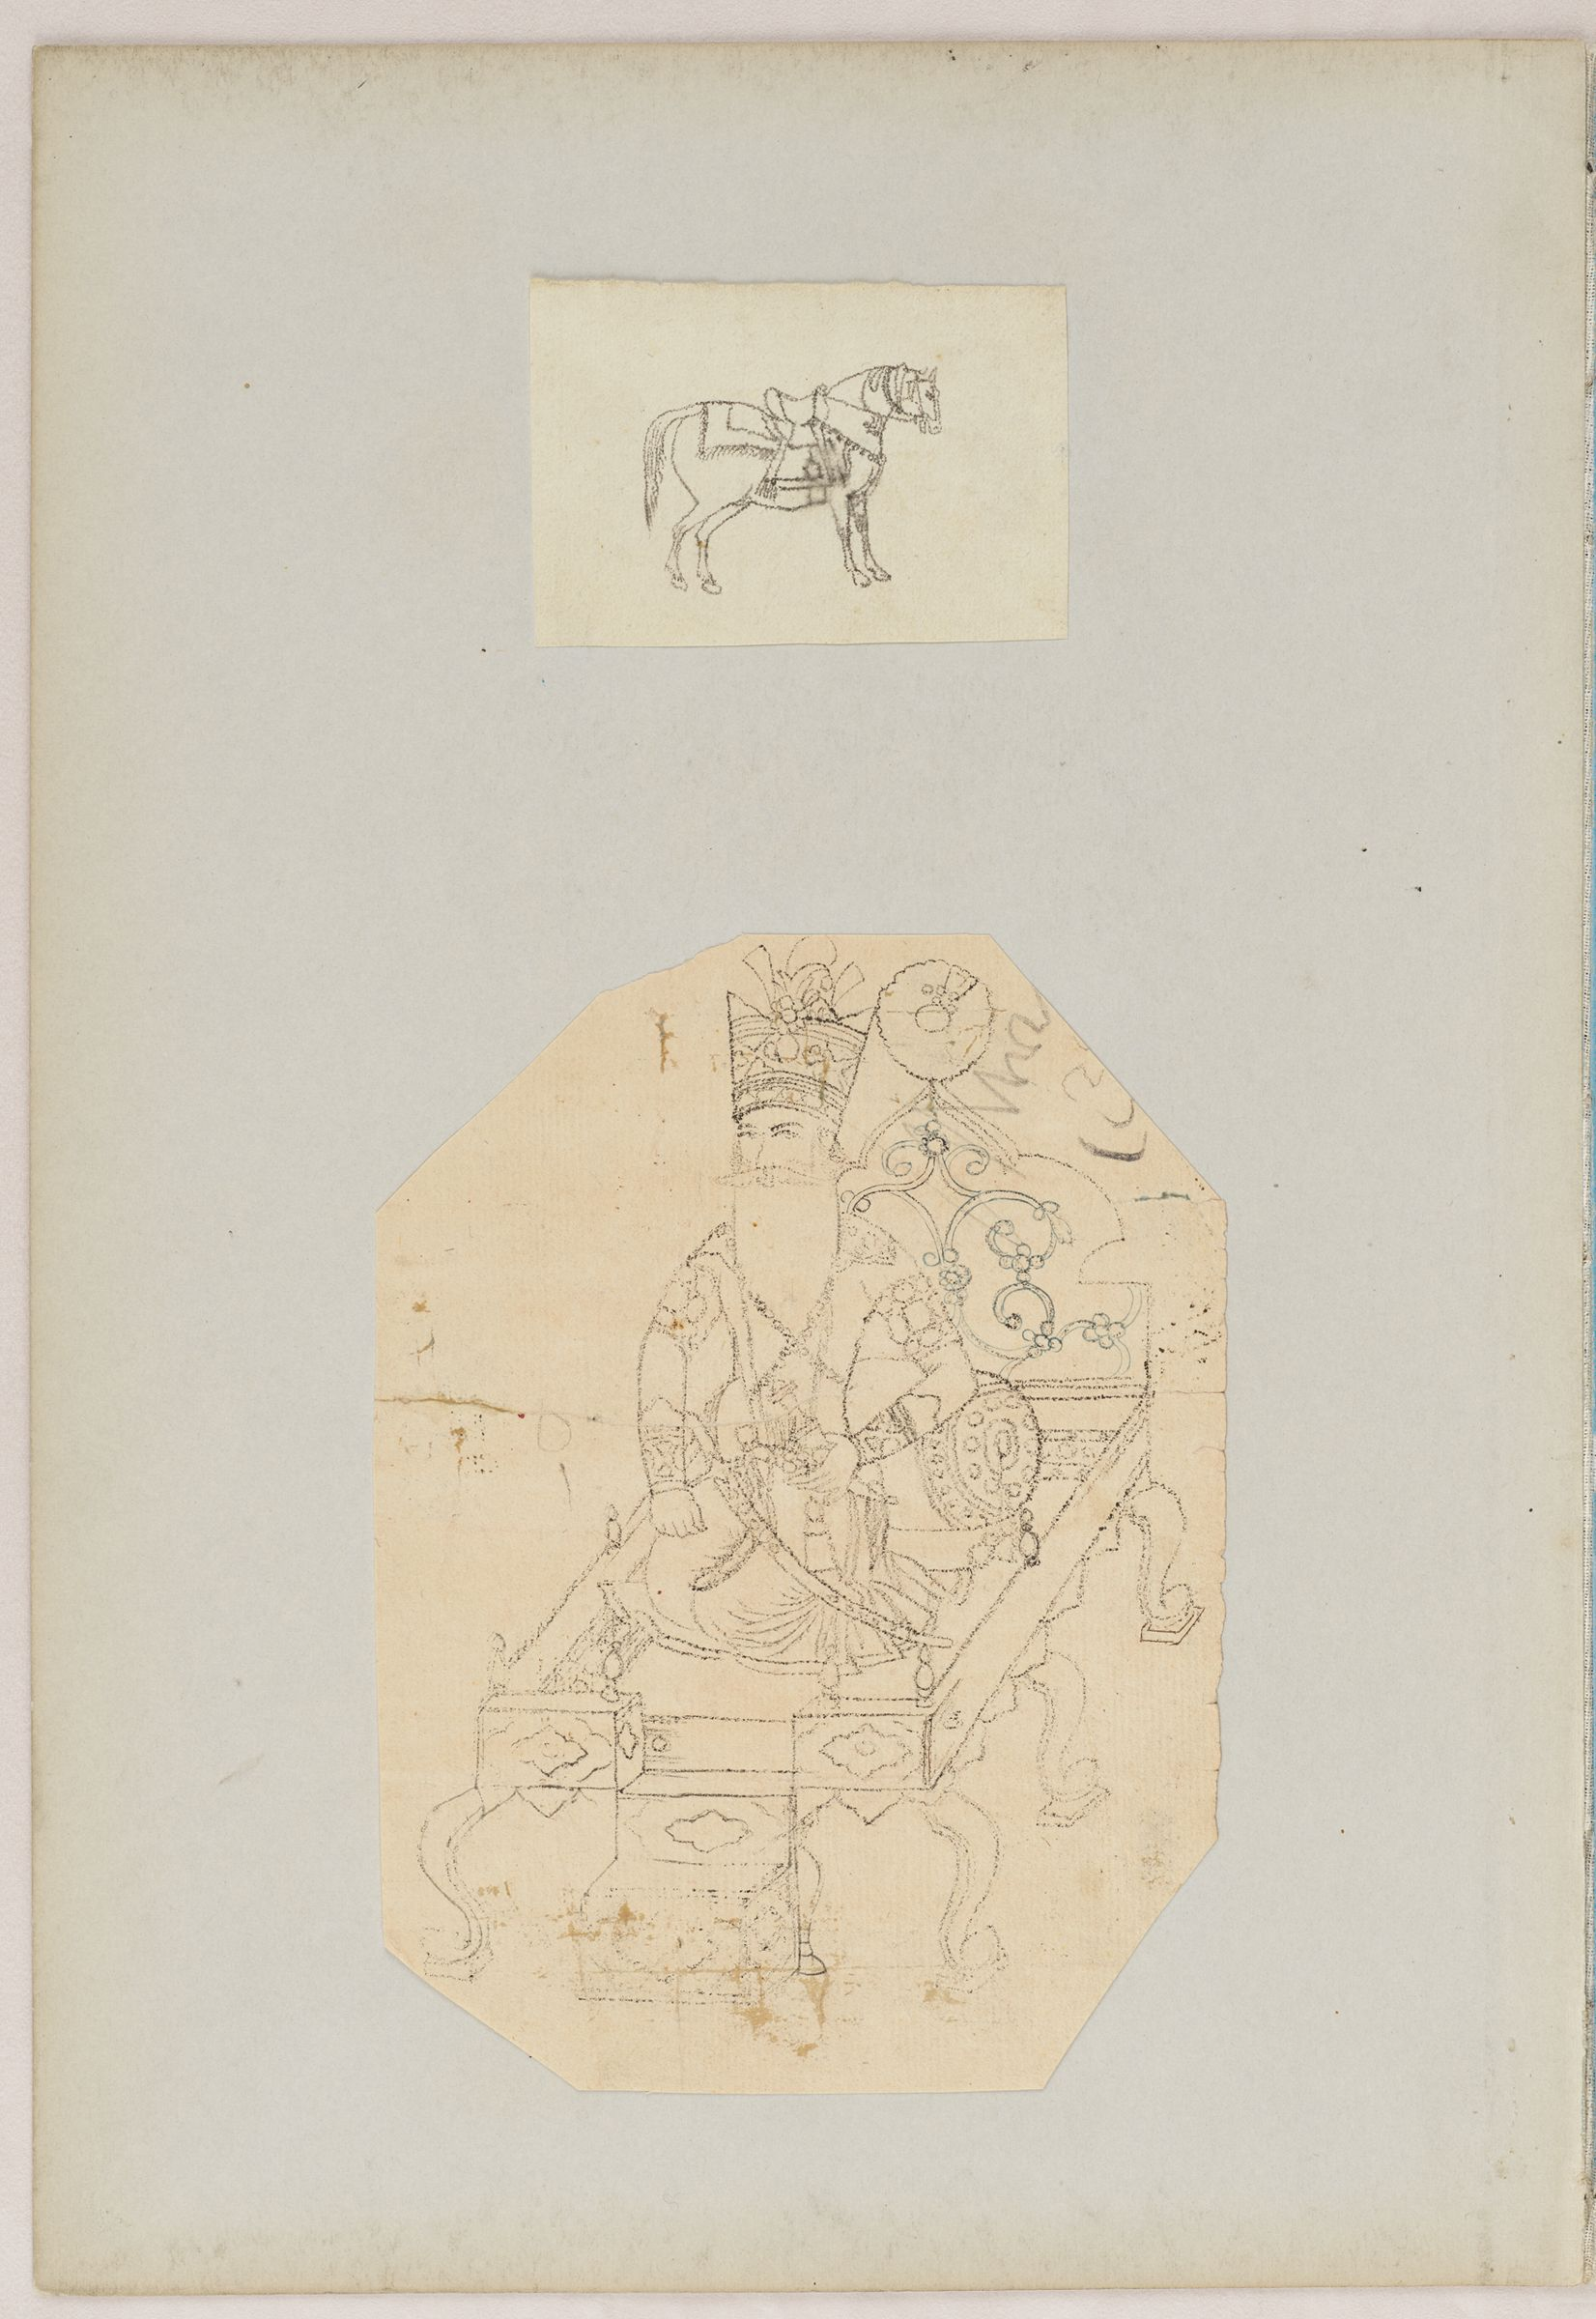 Folio 46 From An Album Of Drawings And Paintings:two Sheets: Horse; Fath Ali Shah Qajar Enthroned (Recto); Blank Page (Verso)